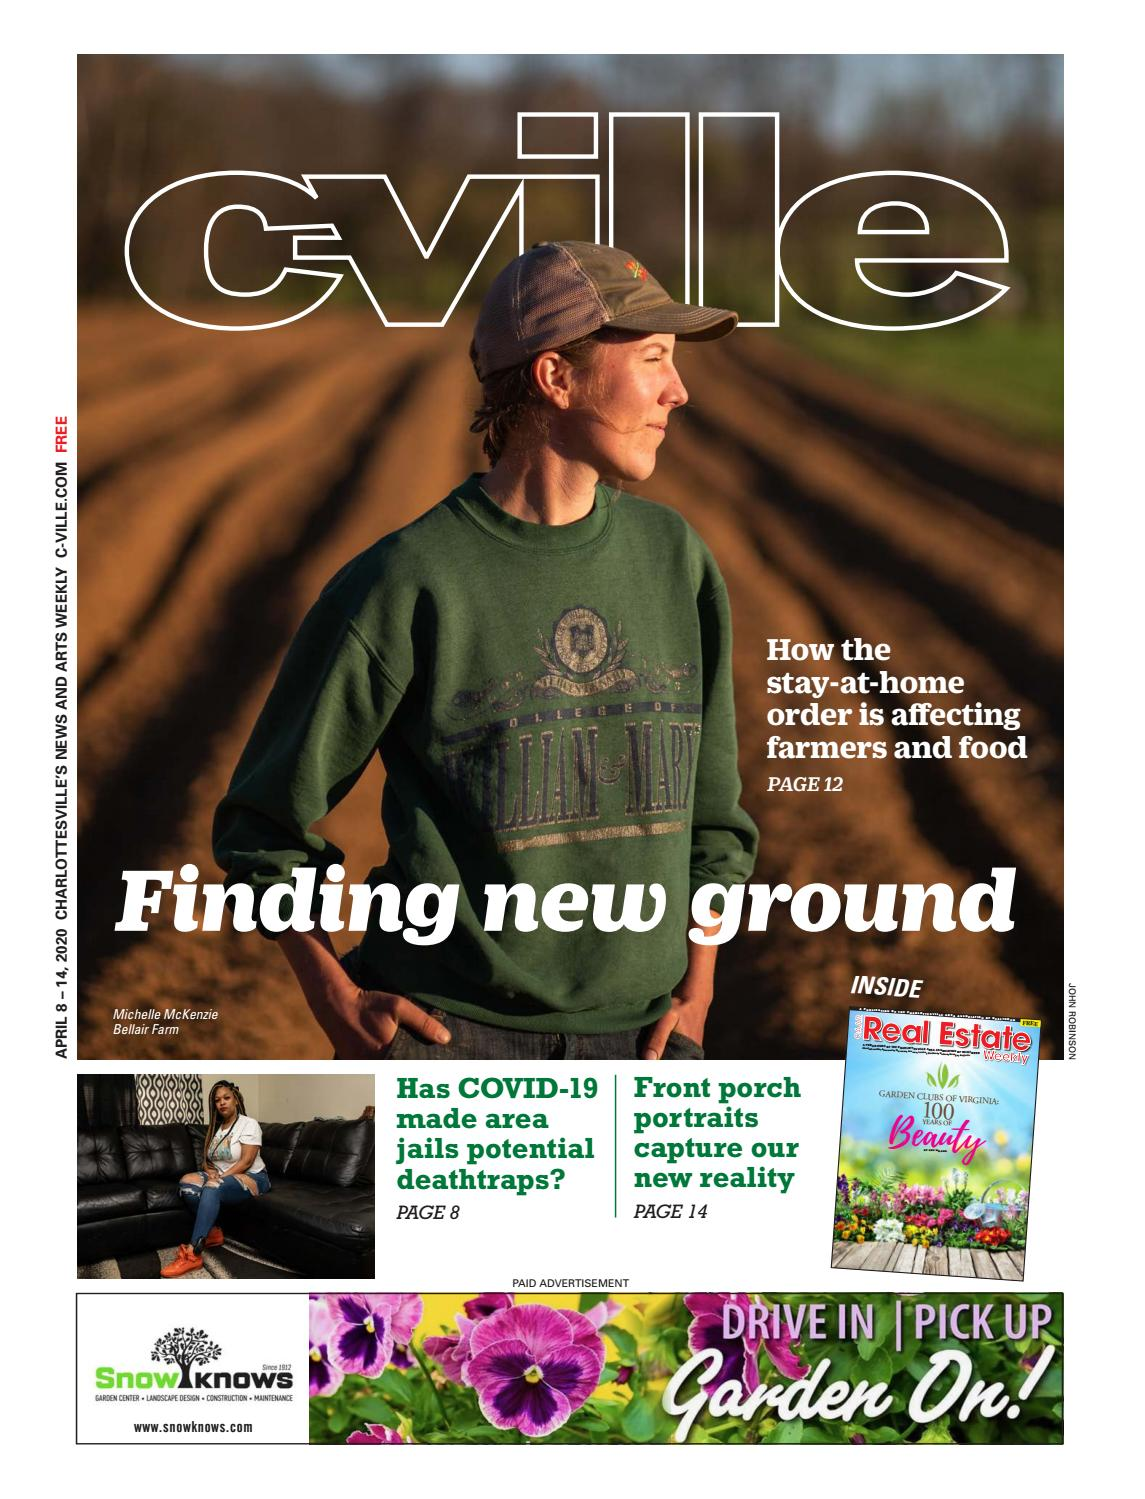 Christmas Free Meal 2020 Charlottesville C VILLE Weekly | April 8 – 14, 2020 by C VILLE Weekly   issuu